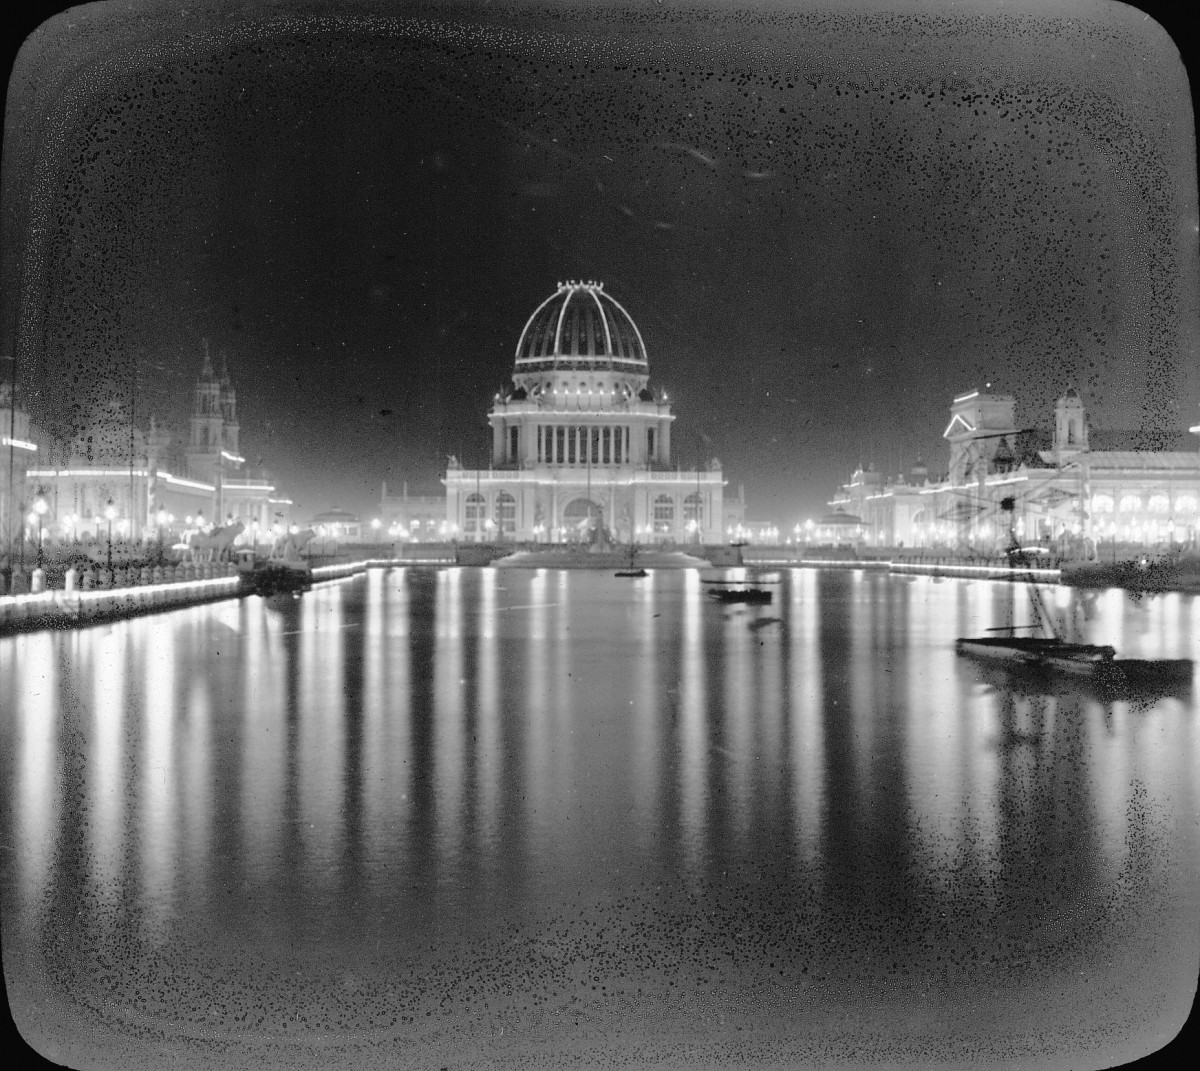 THE COLUMBIAN EXPOSITION LIT UP WITH ELECTRIC LIGHTS